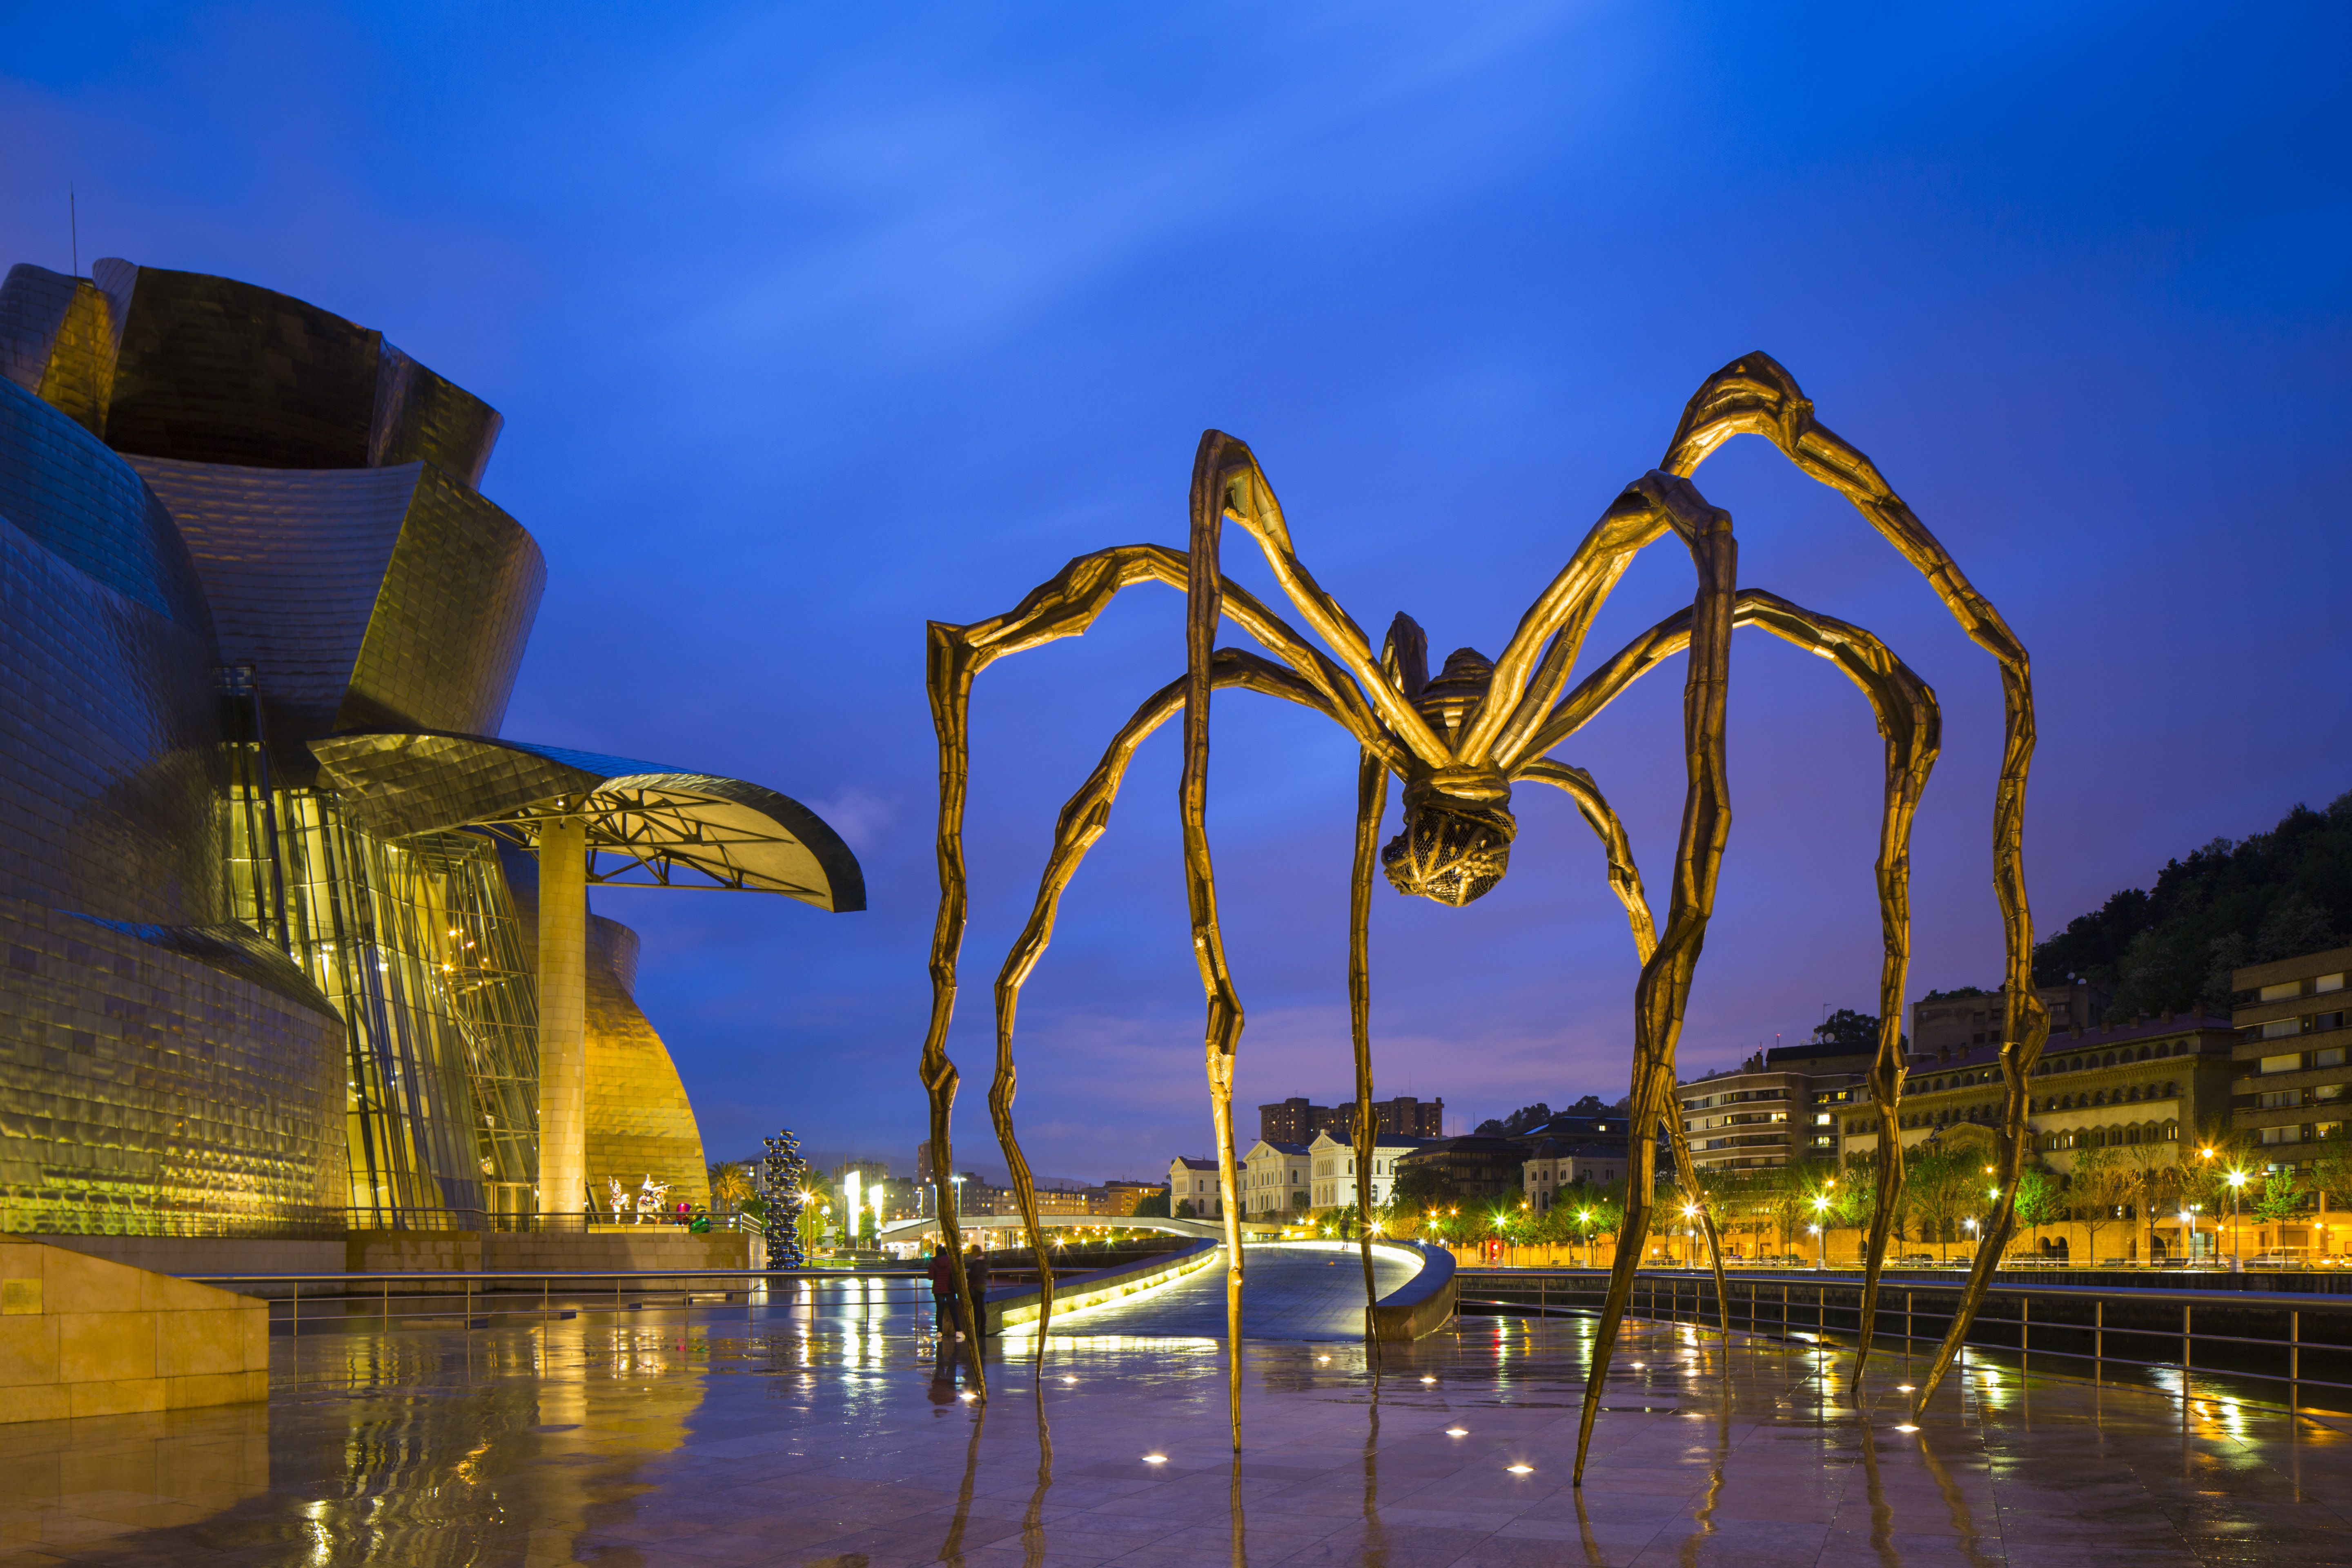 Huge spider sculpture by Louise Bourgeois illuminated at night